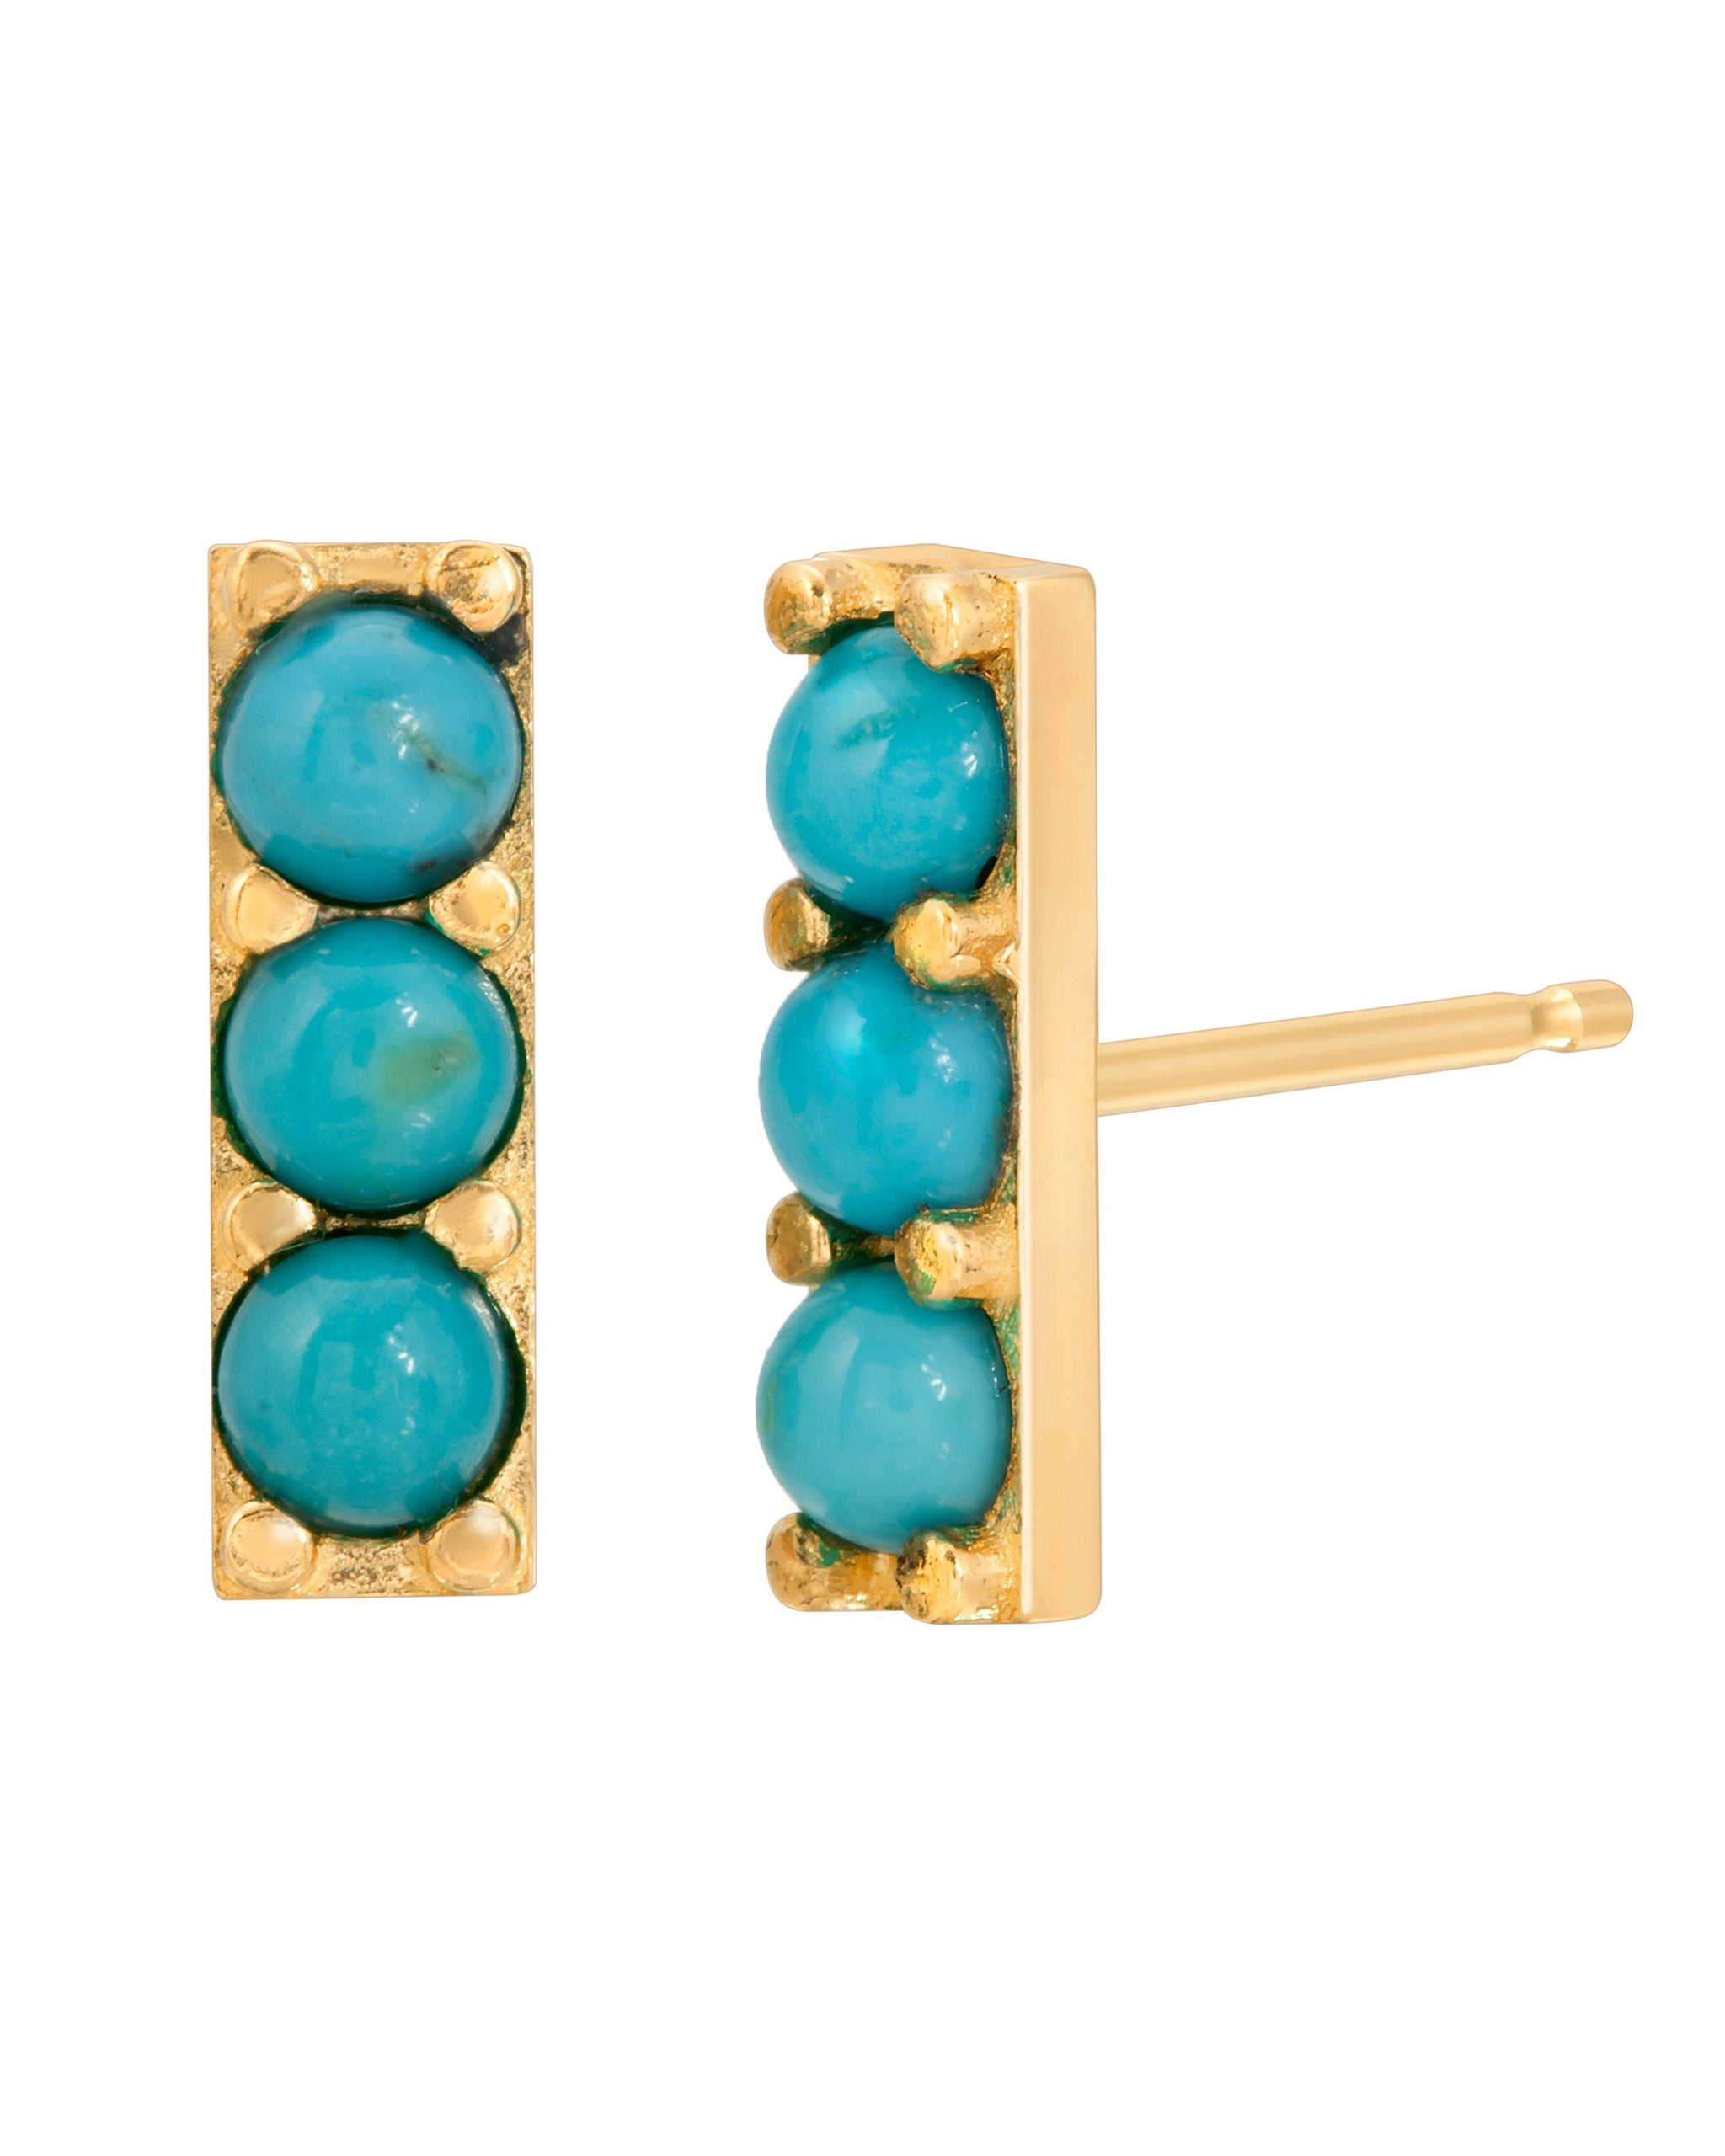 River Stud Earring, 14k Yellow Gold with 3 Sleeping Beauty Turquoise Stones, Handmade by Turquoise + Tobacco